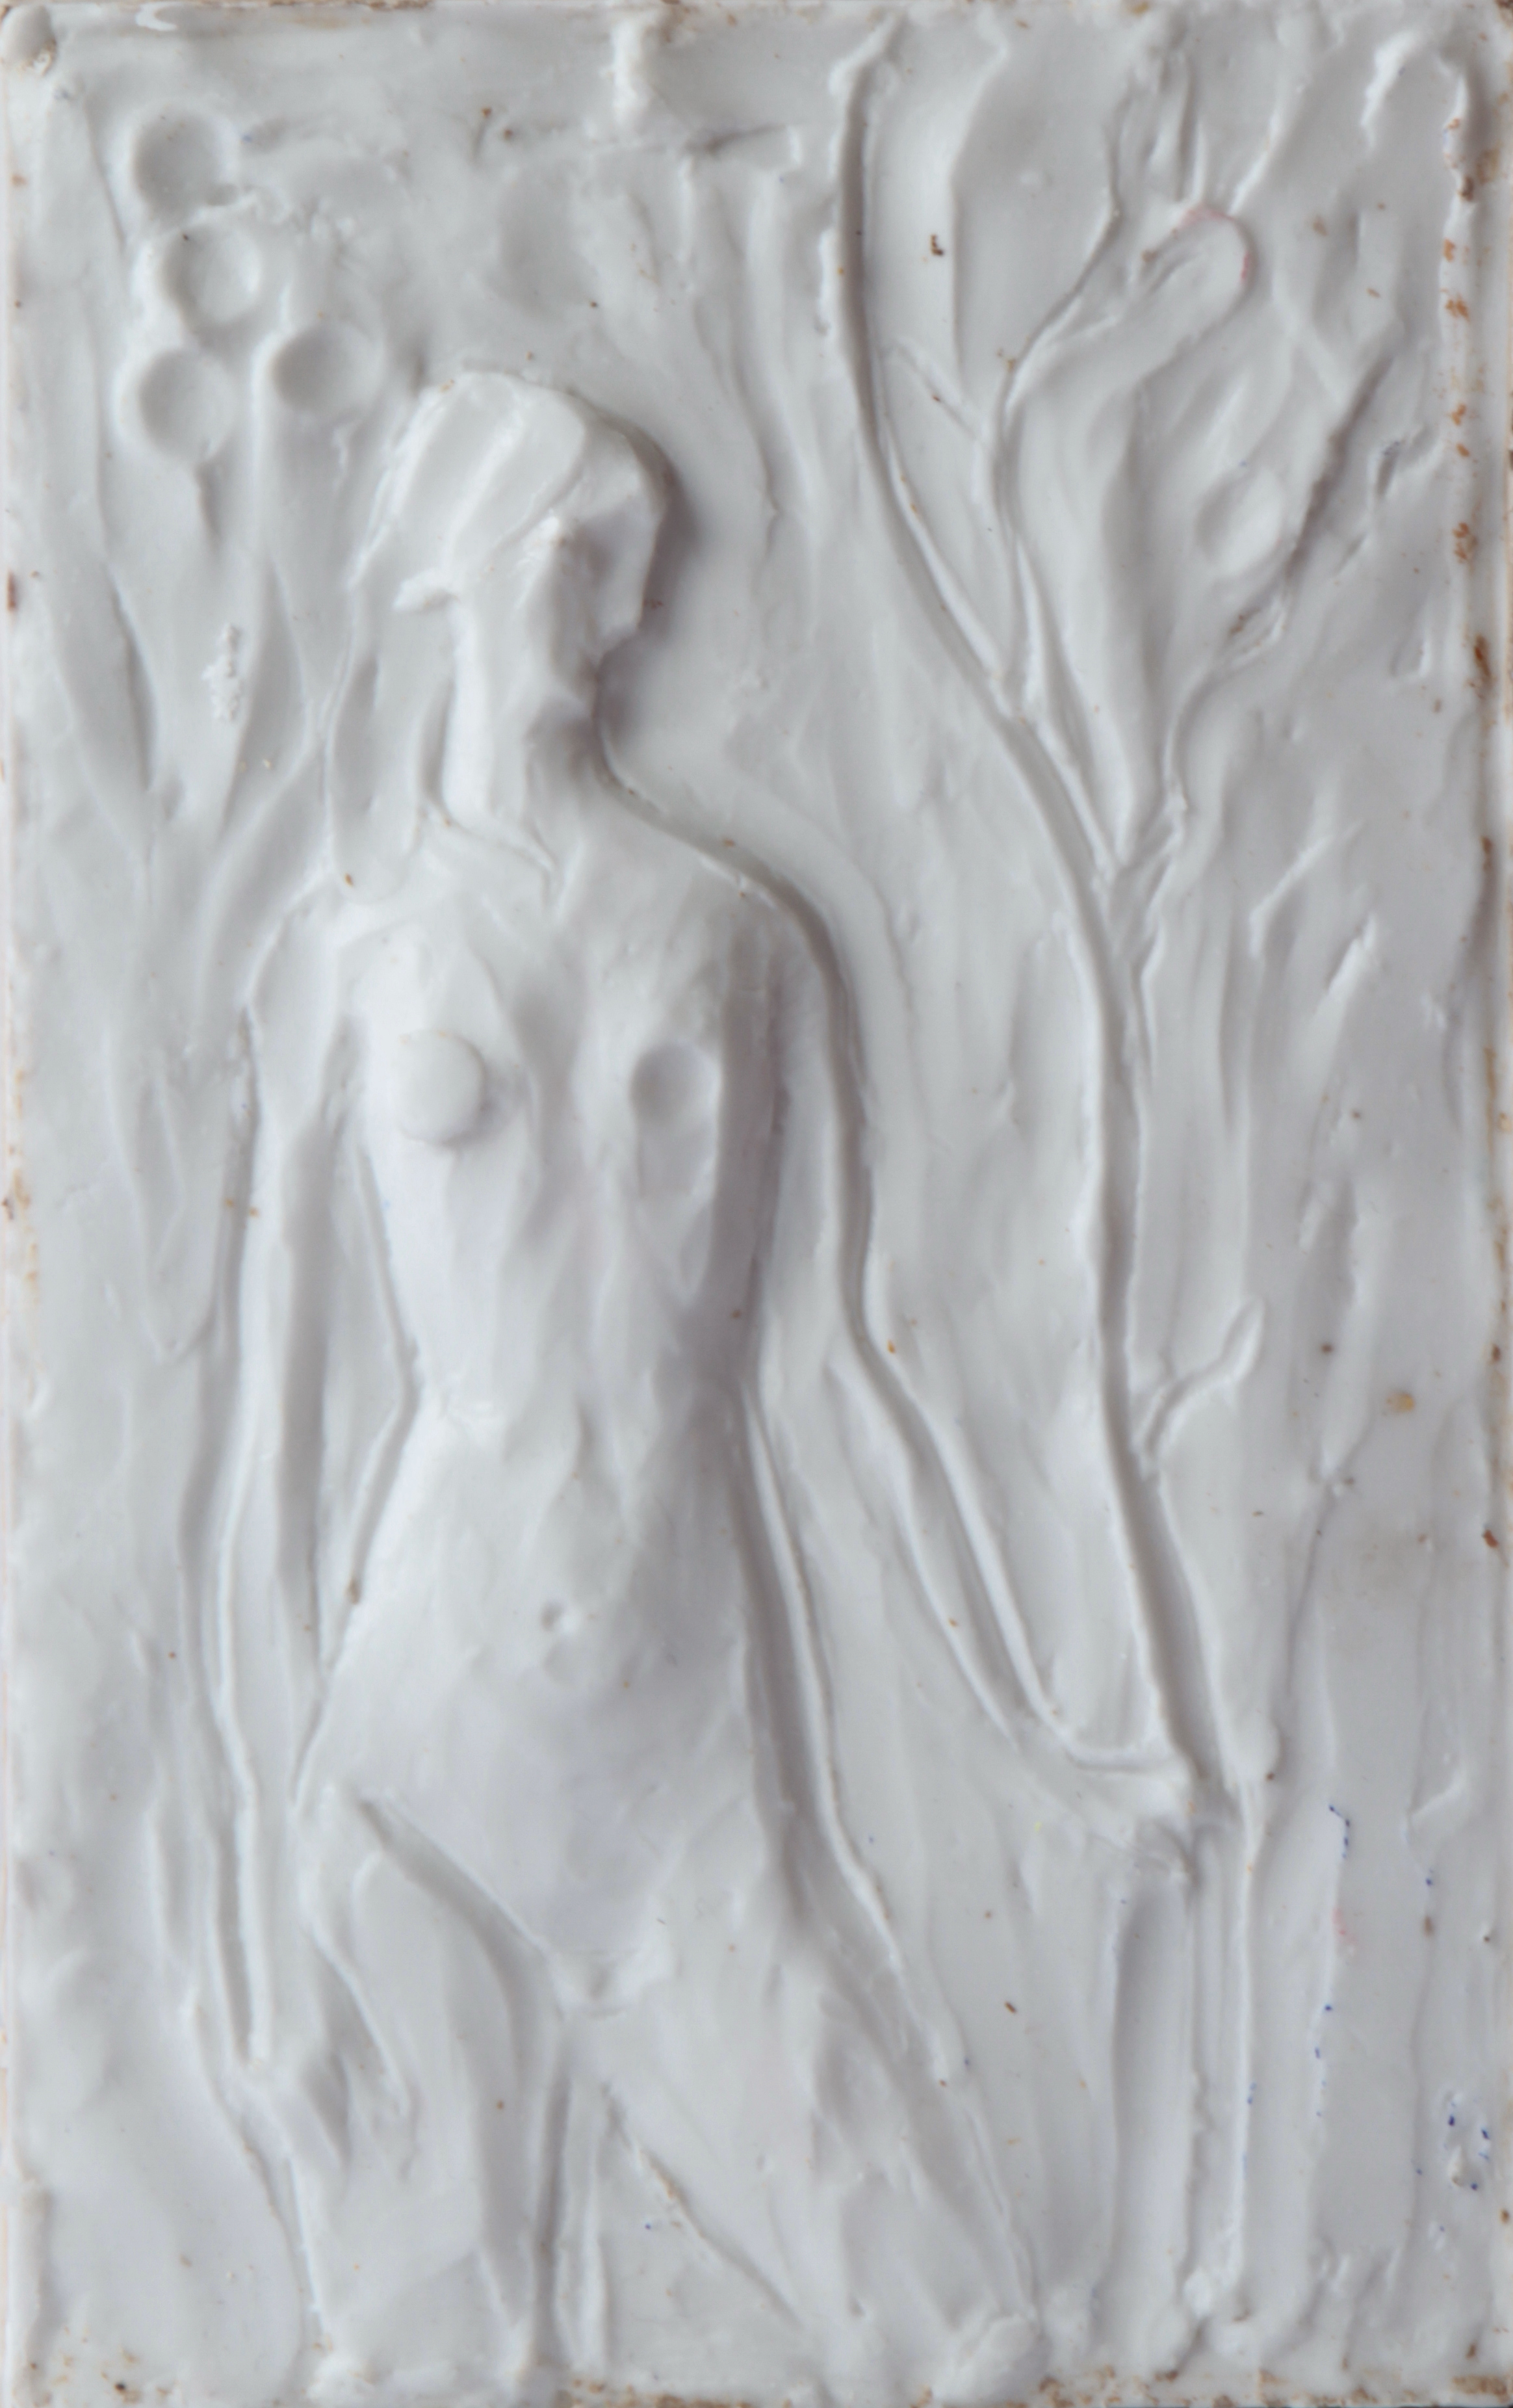 Generations, Silicone rubber (mounted on panel), 36 x 22.7 x 4.7 cm, 2015